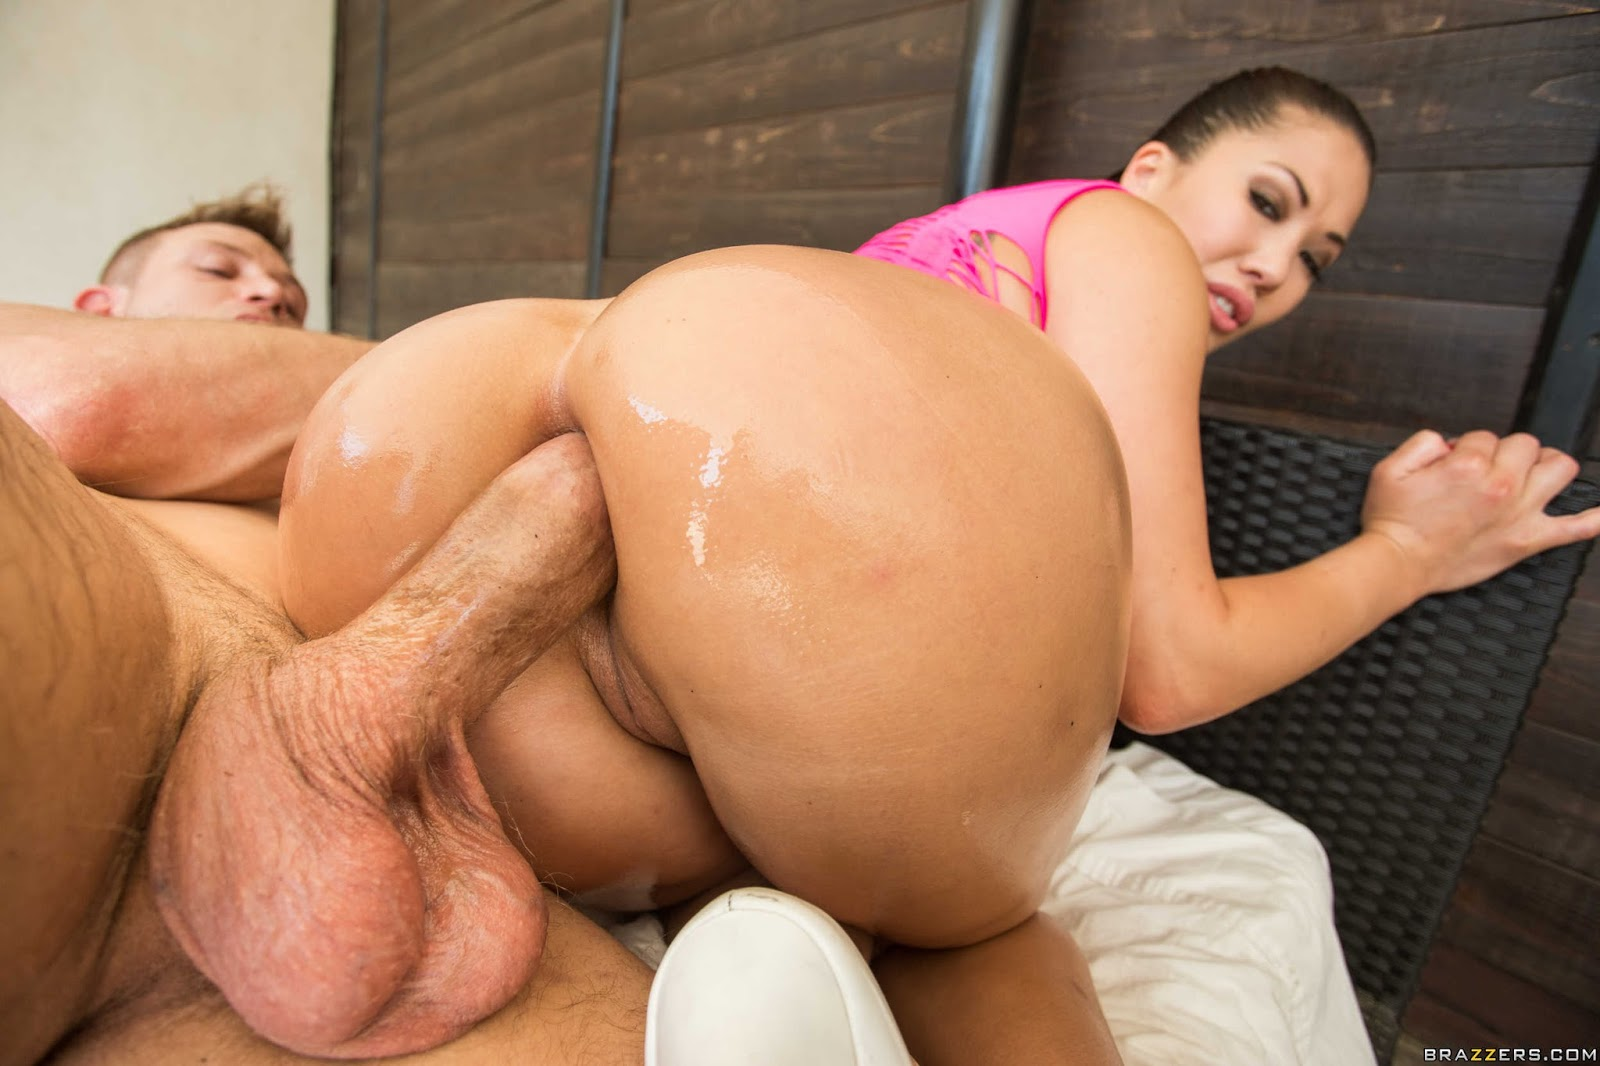 Mendy Had A Very Big Ass And The Guy Wants To Fuck Her Anus